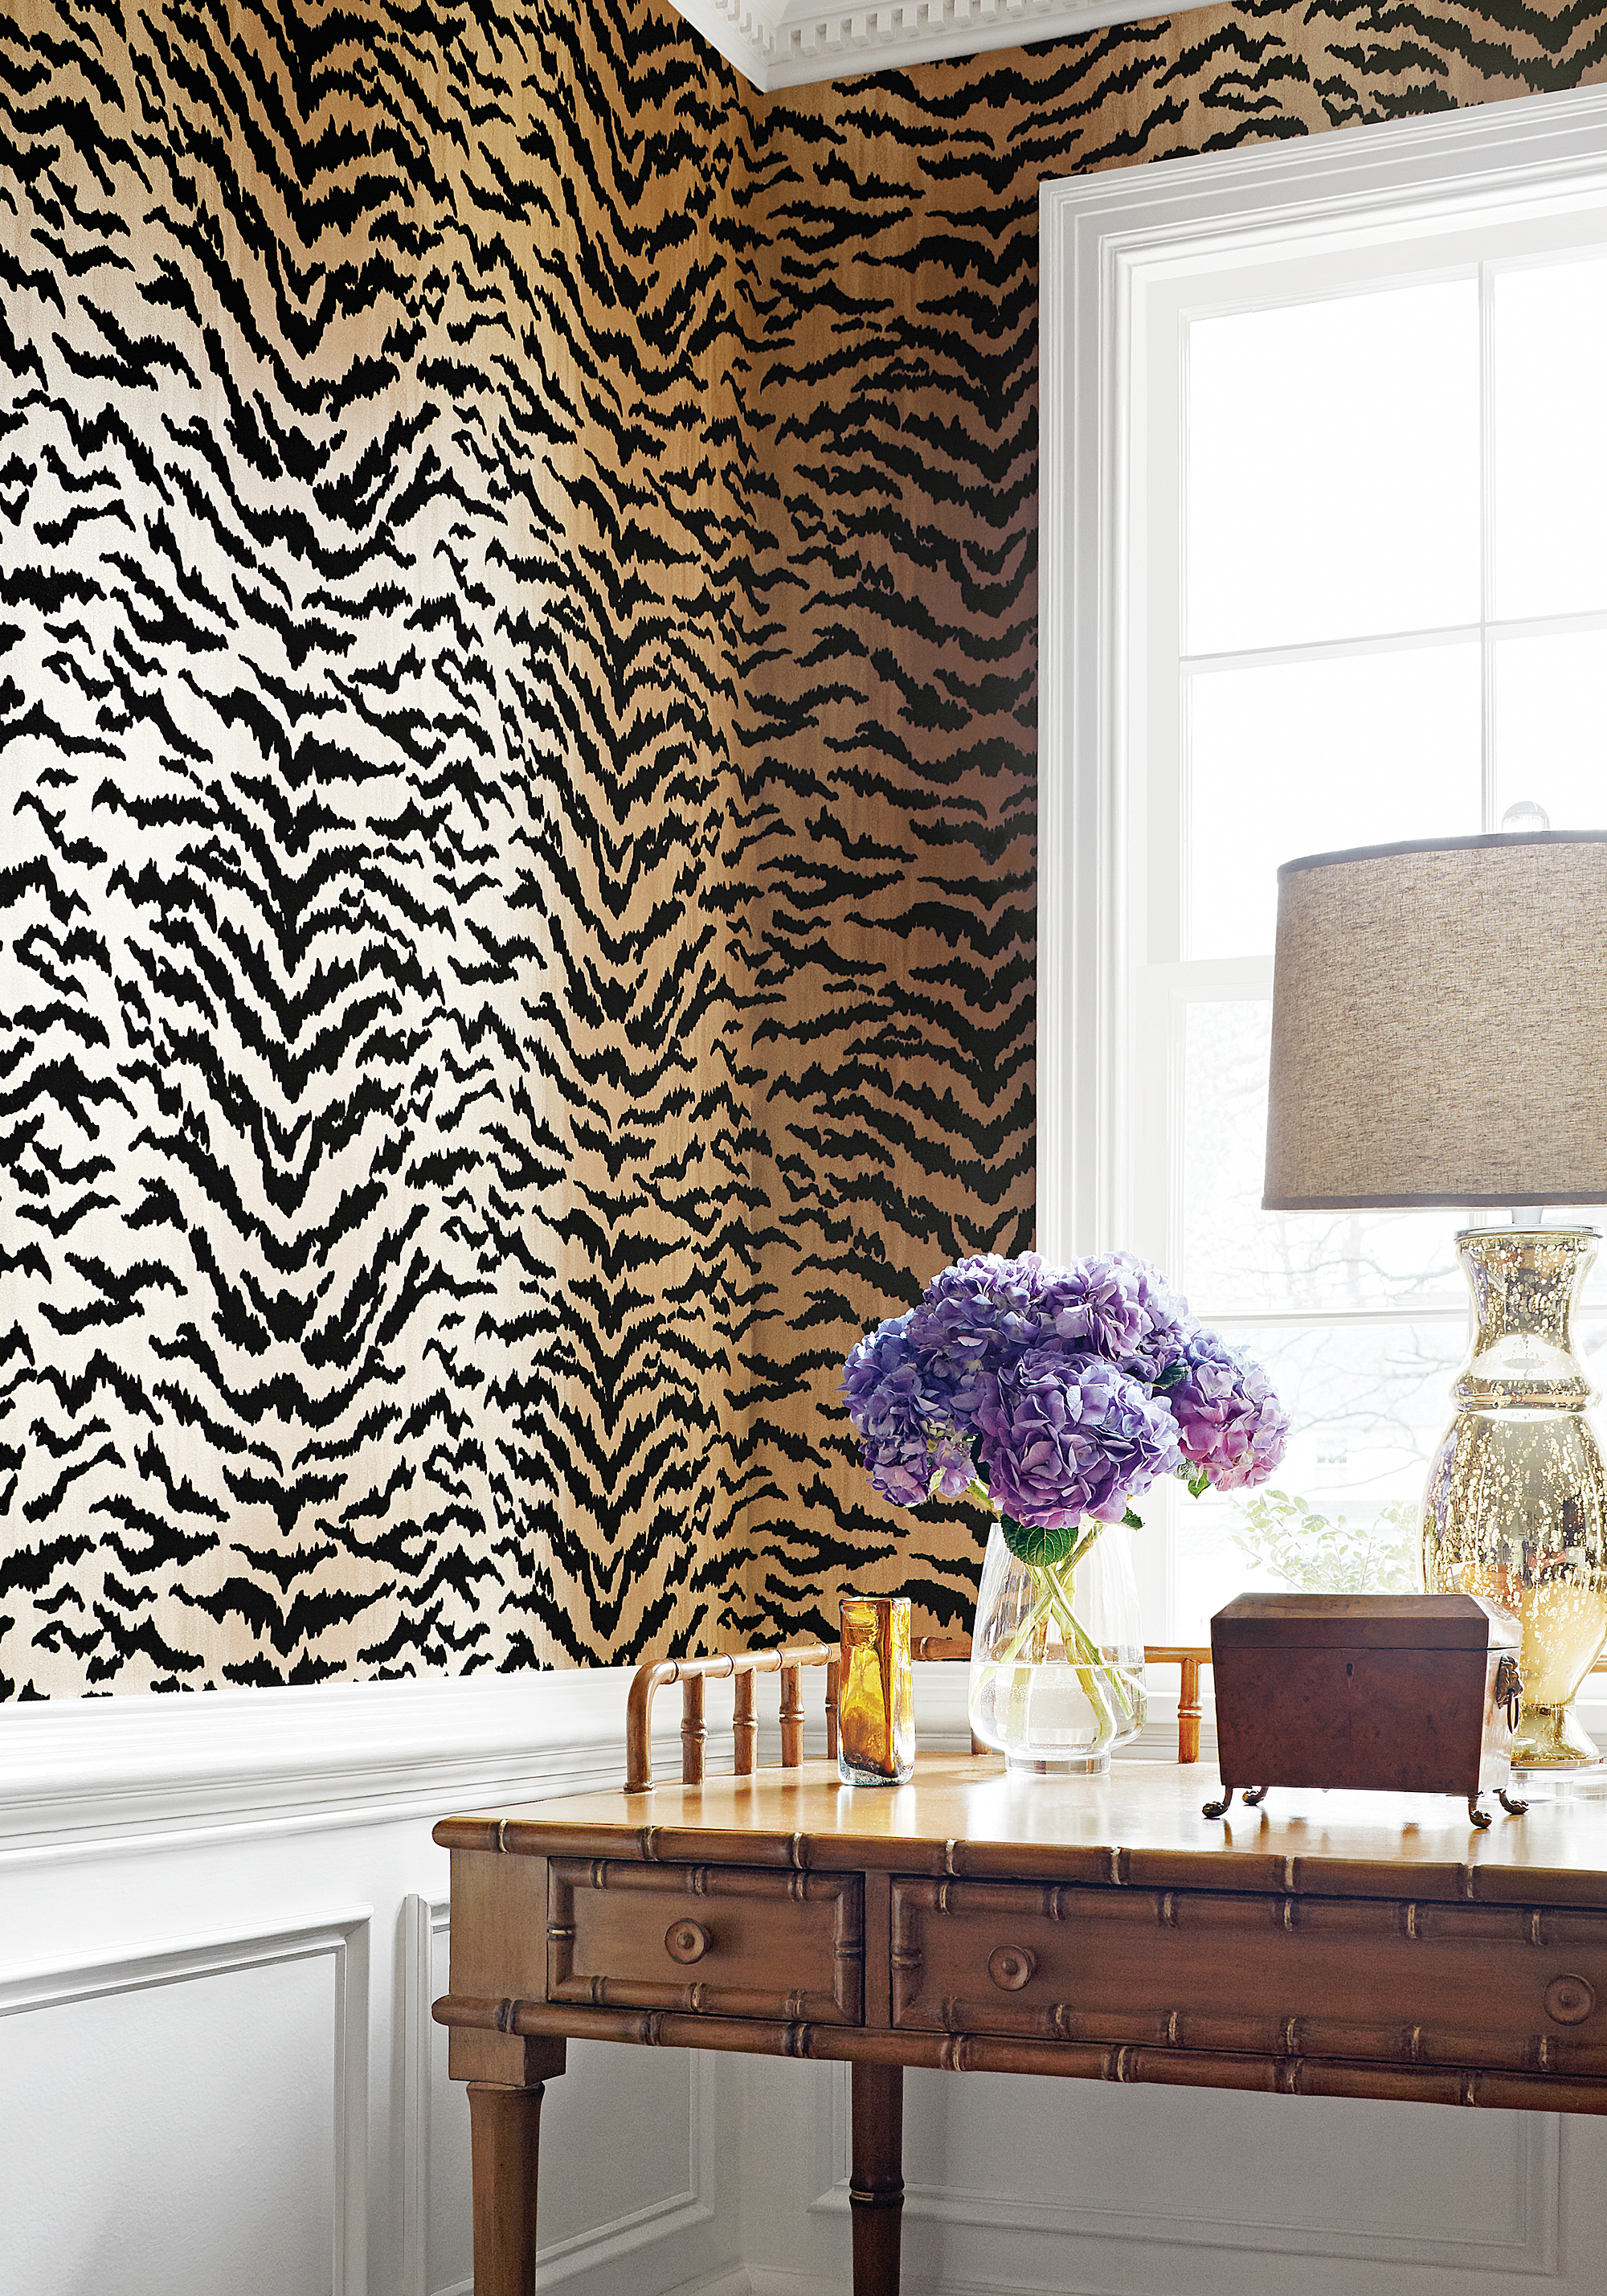 Amazing animal print wallpaper ideas shoproomideas for Leopard print living room ideas